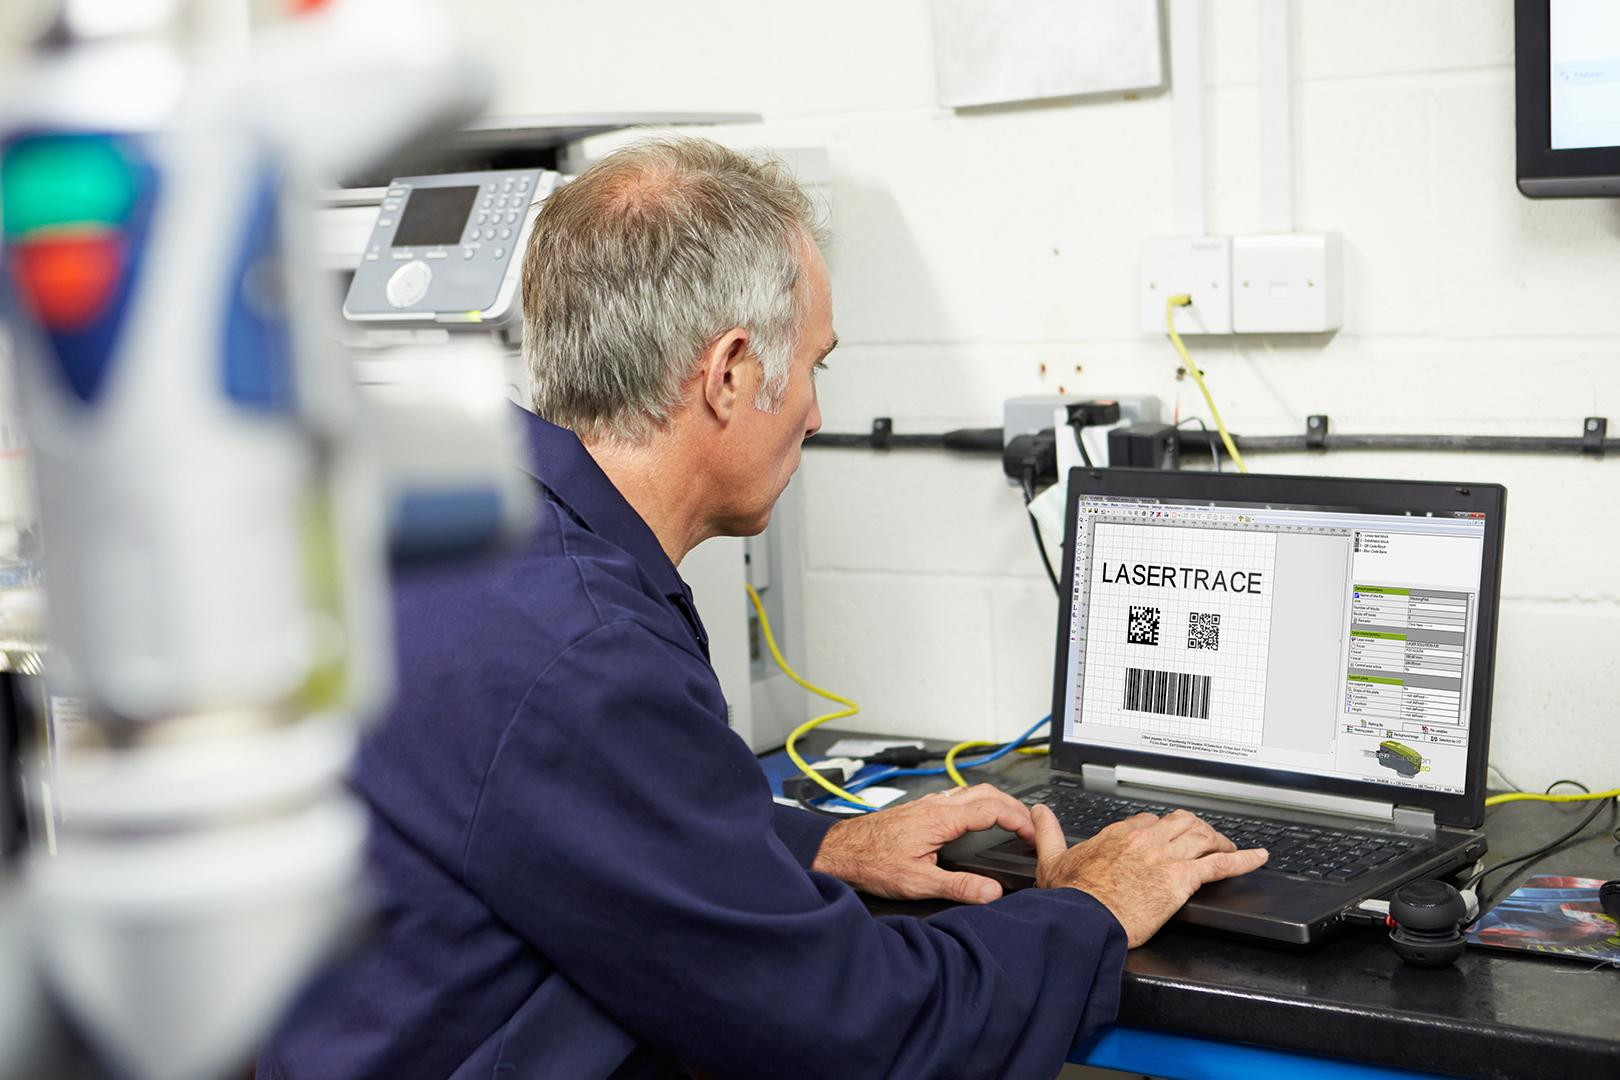 Lasertrace : piloting software for Gravotech traceability machines